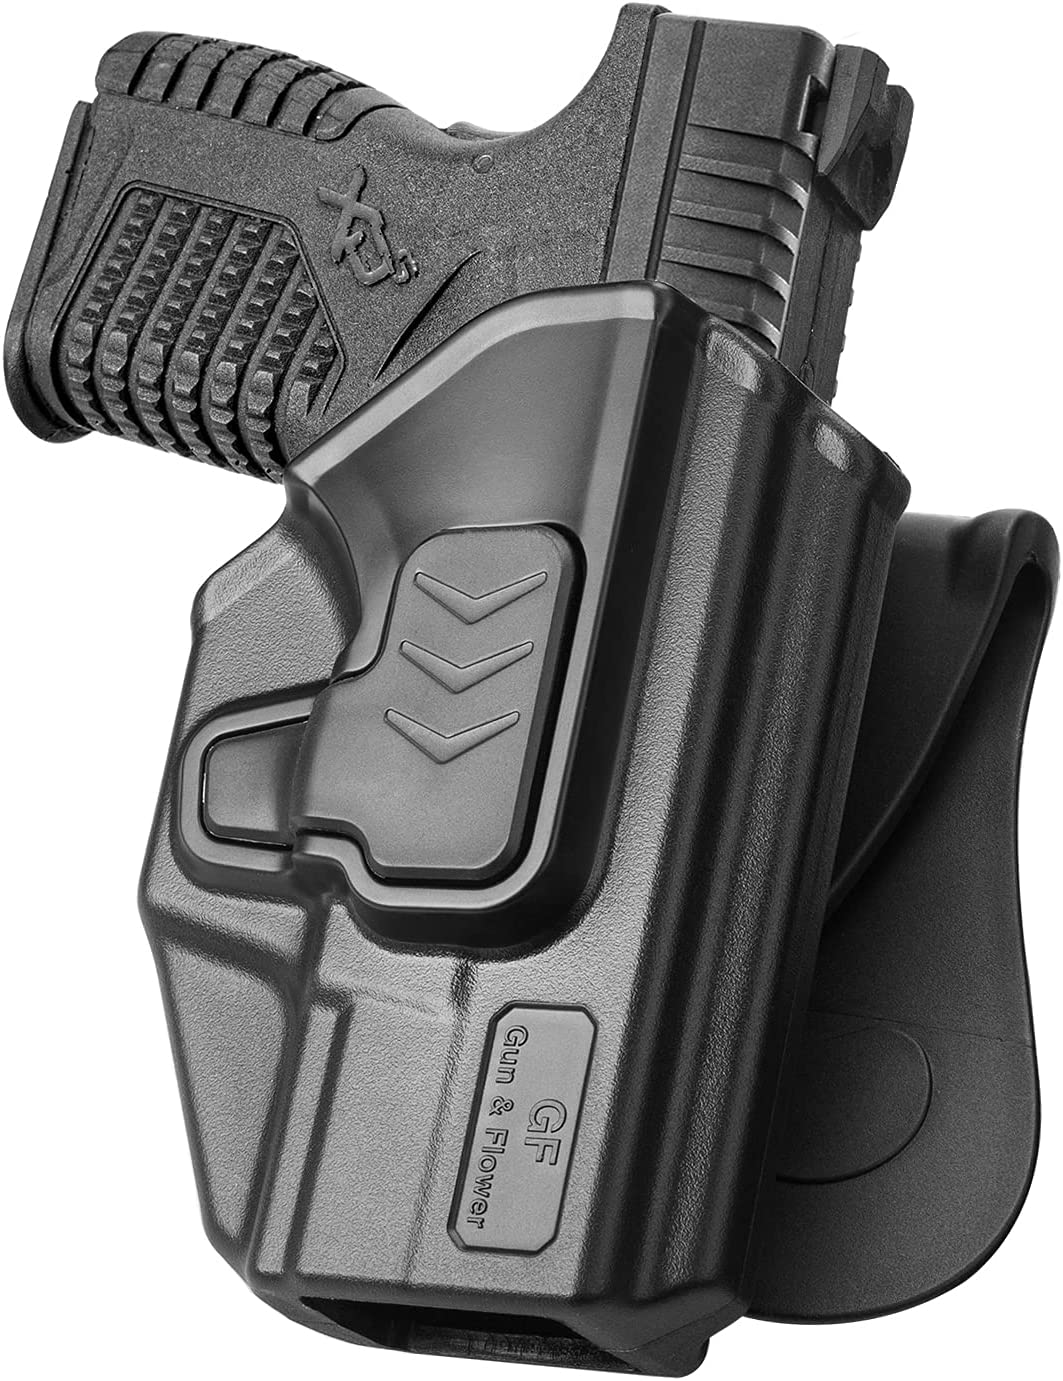 Springfield XD-S Holster For Springfield XDS 9mm